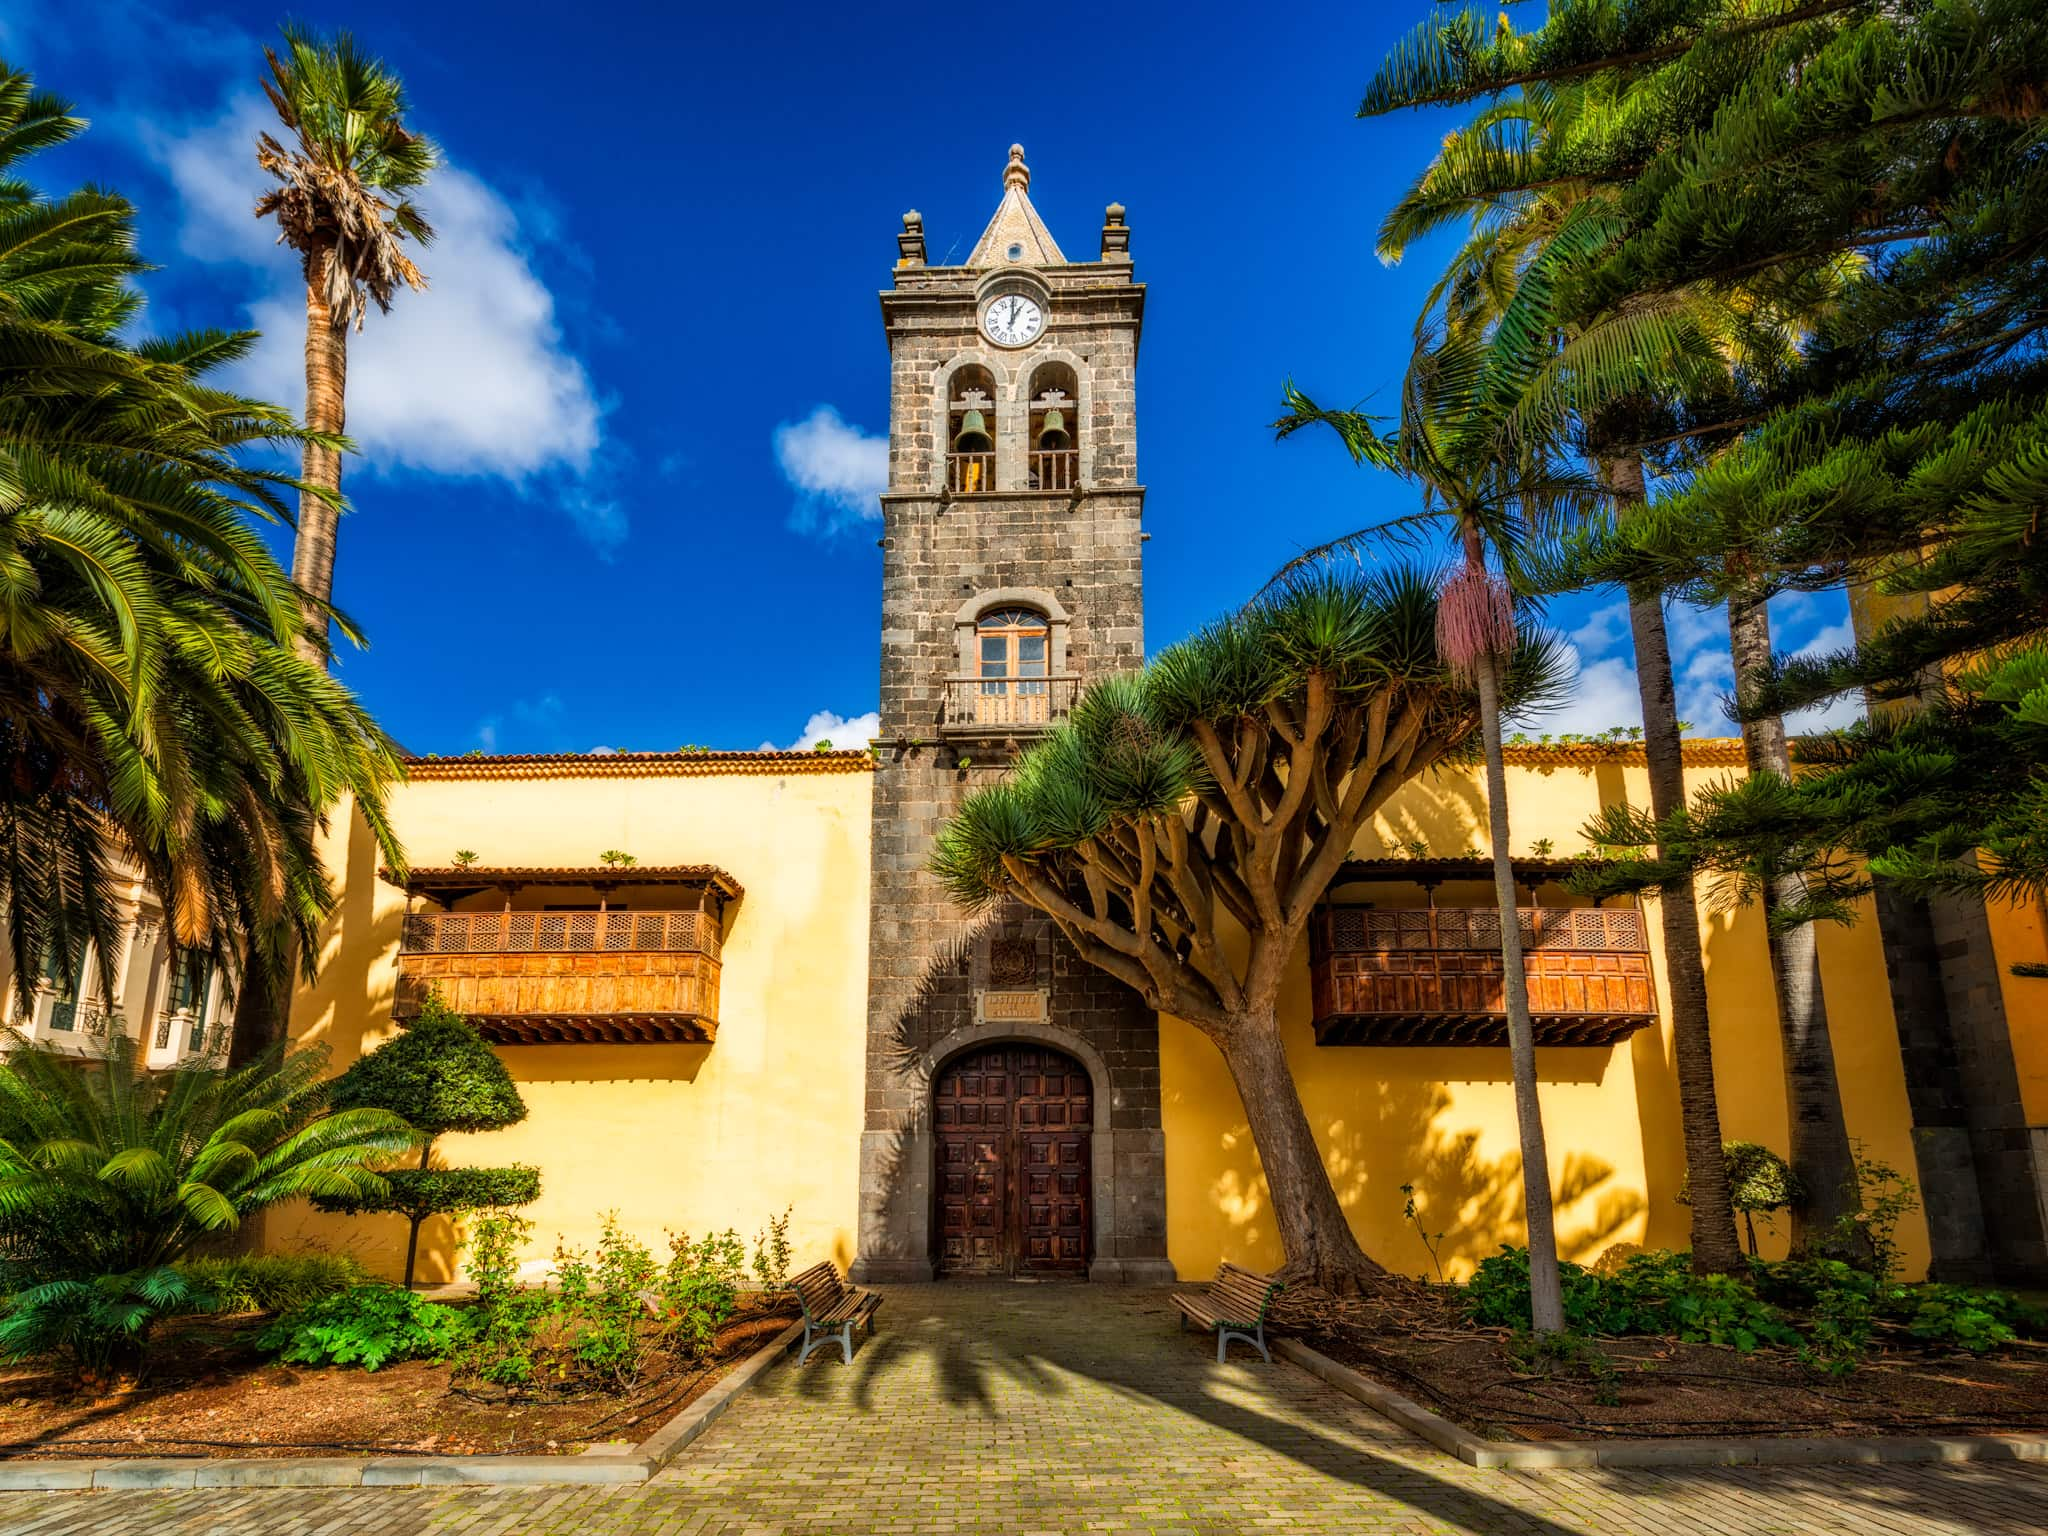 Canary Islands Instituto Cabrera Pinto | San Cristóbal De La Laguna, Spain